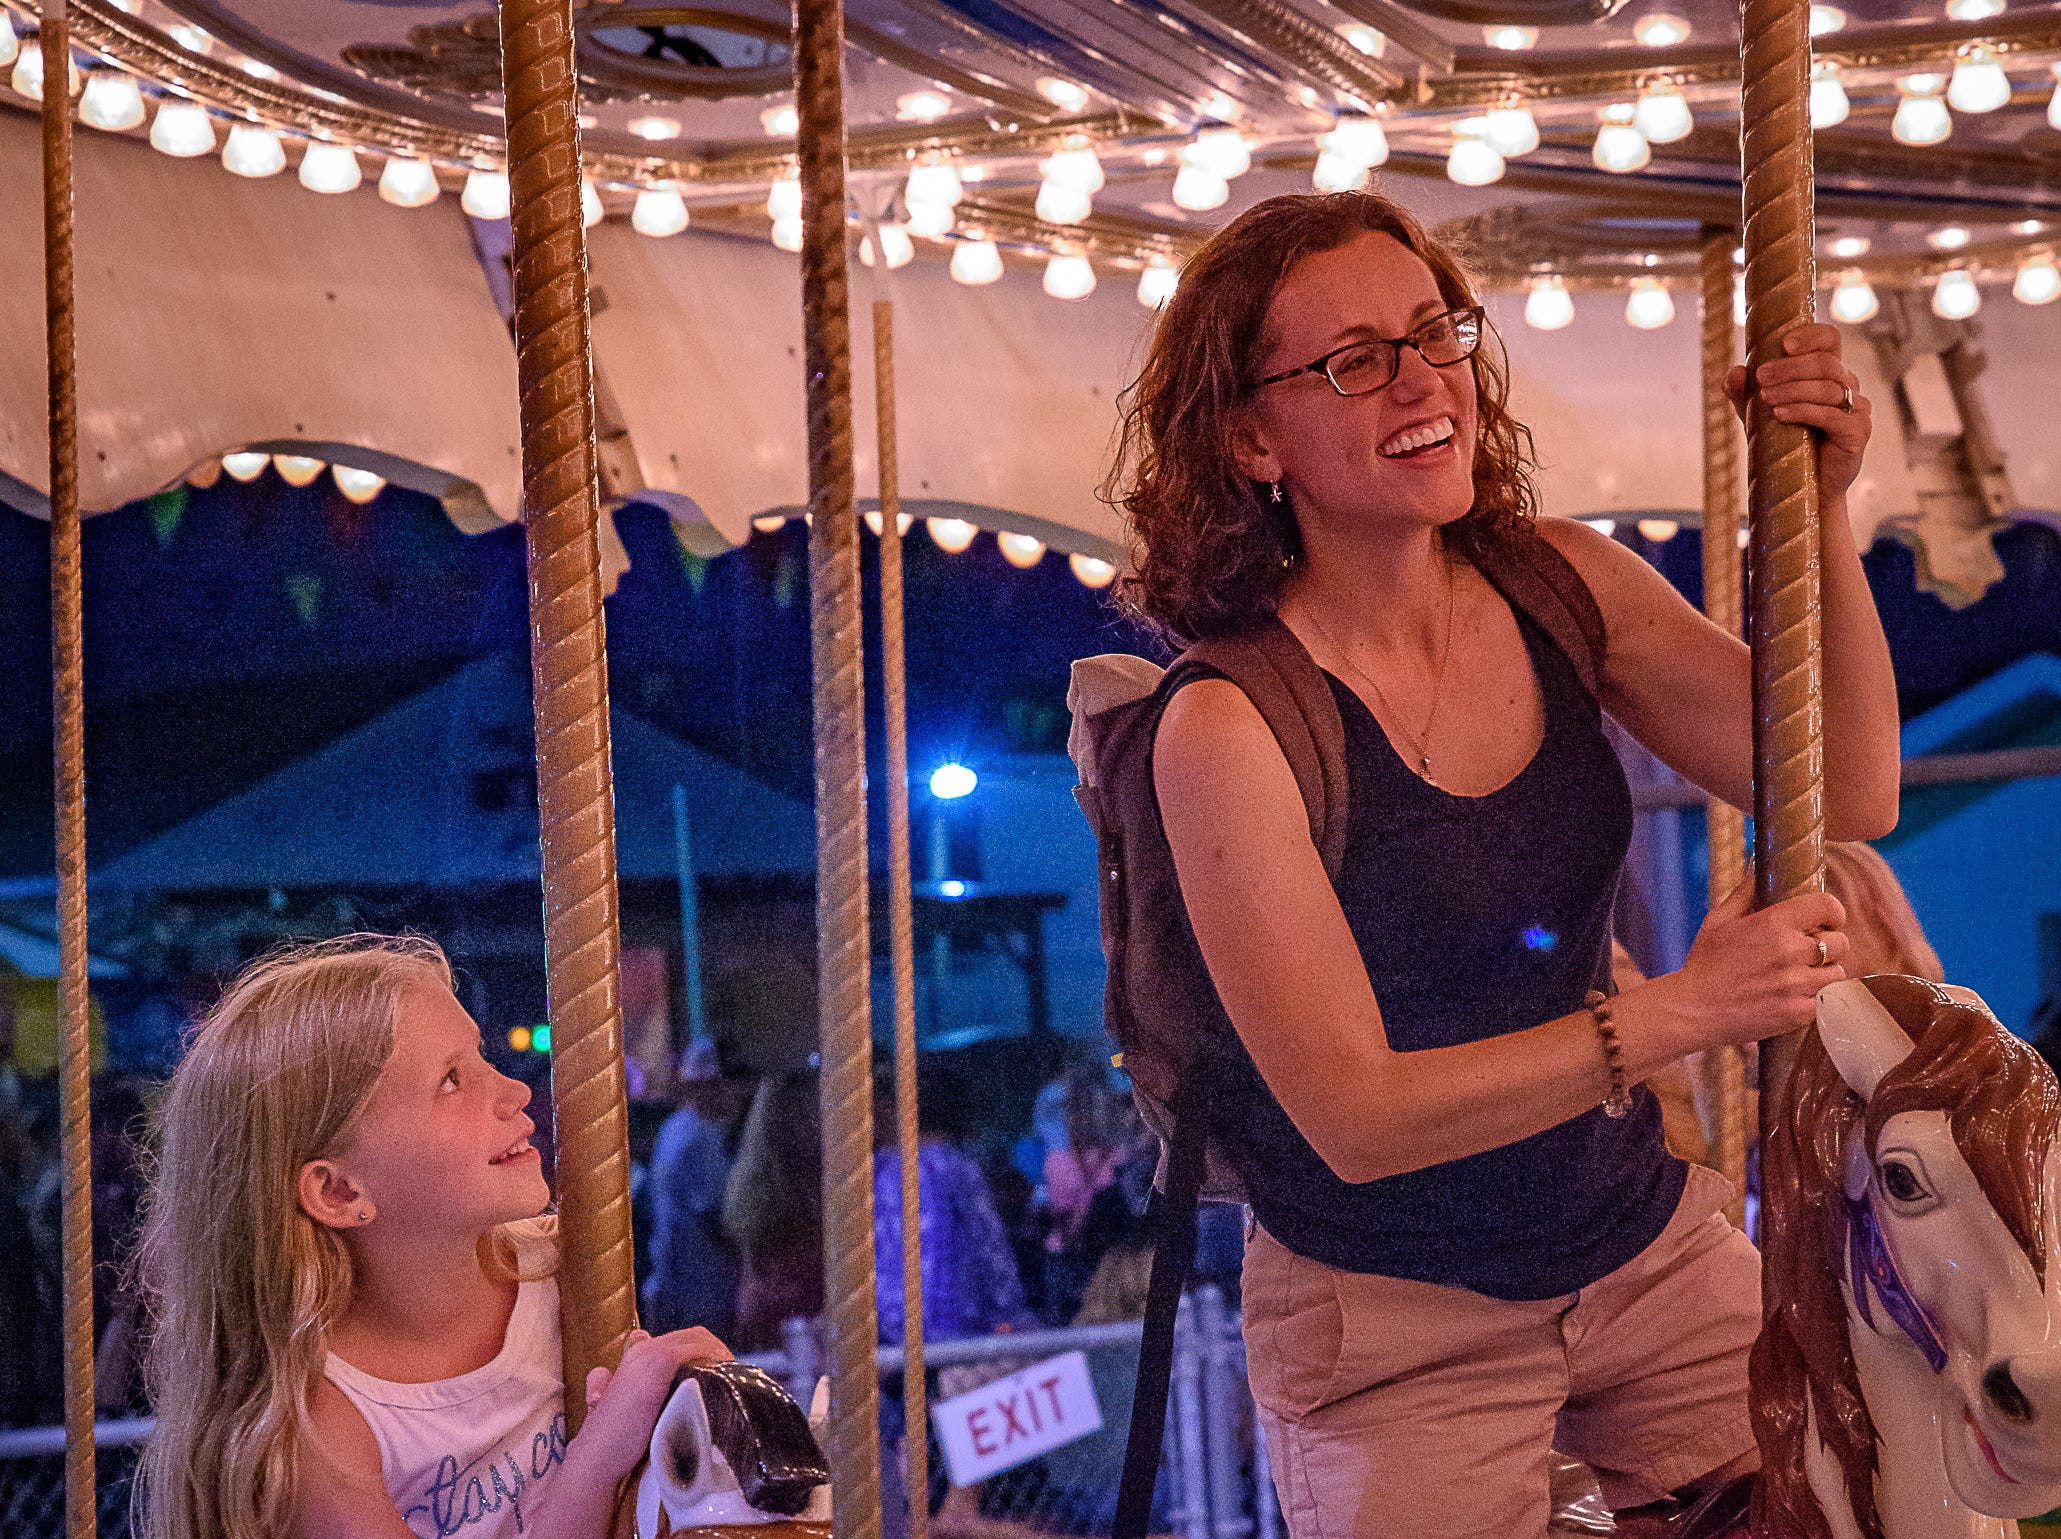 The carousel was popular with young and old alike at the Chincoteague Fireman's Carnival.